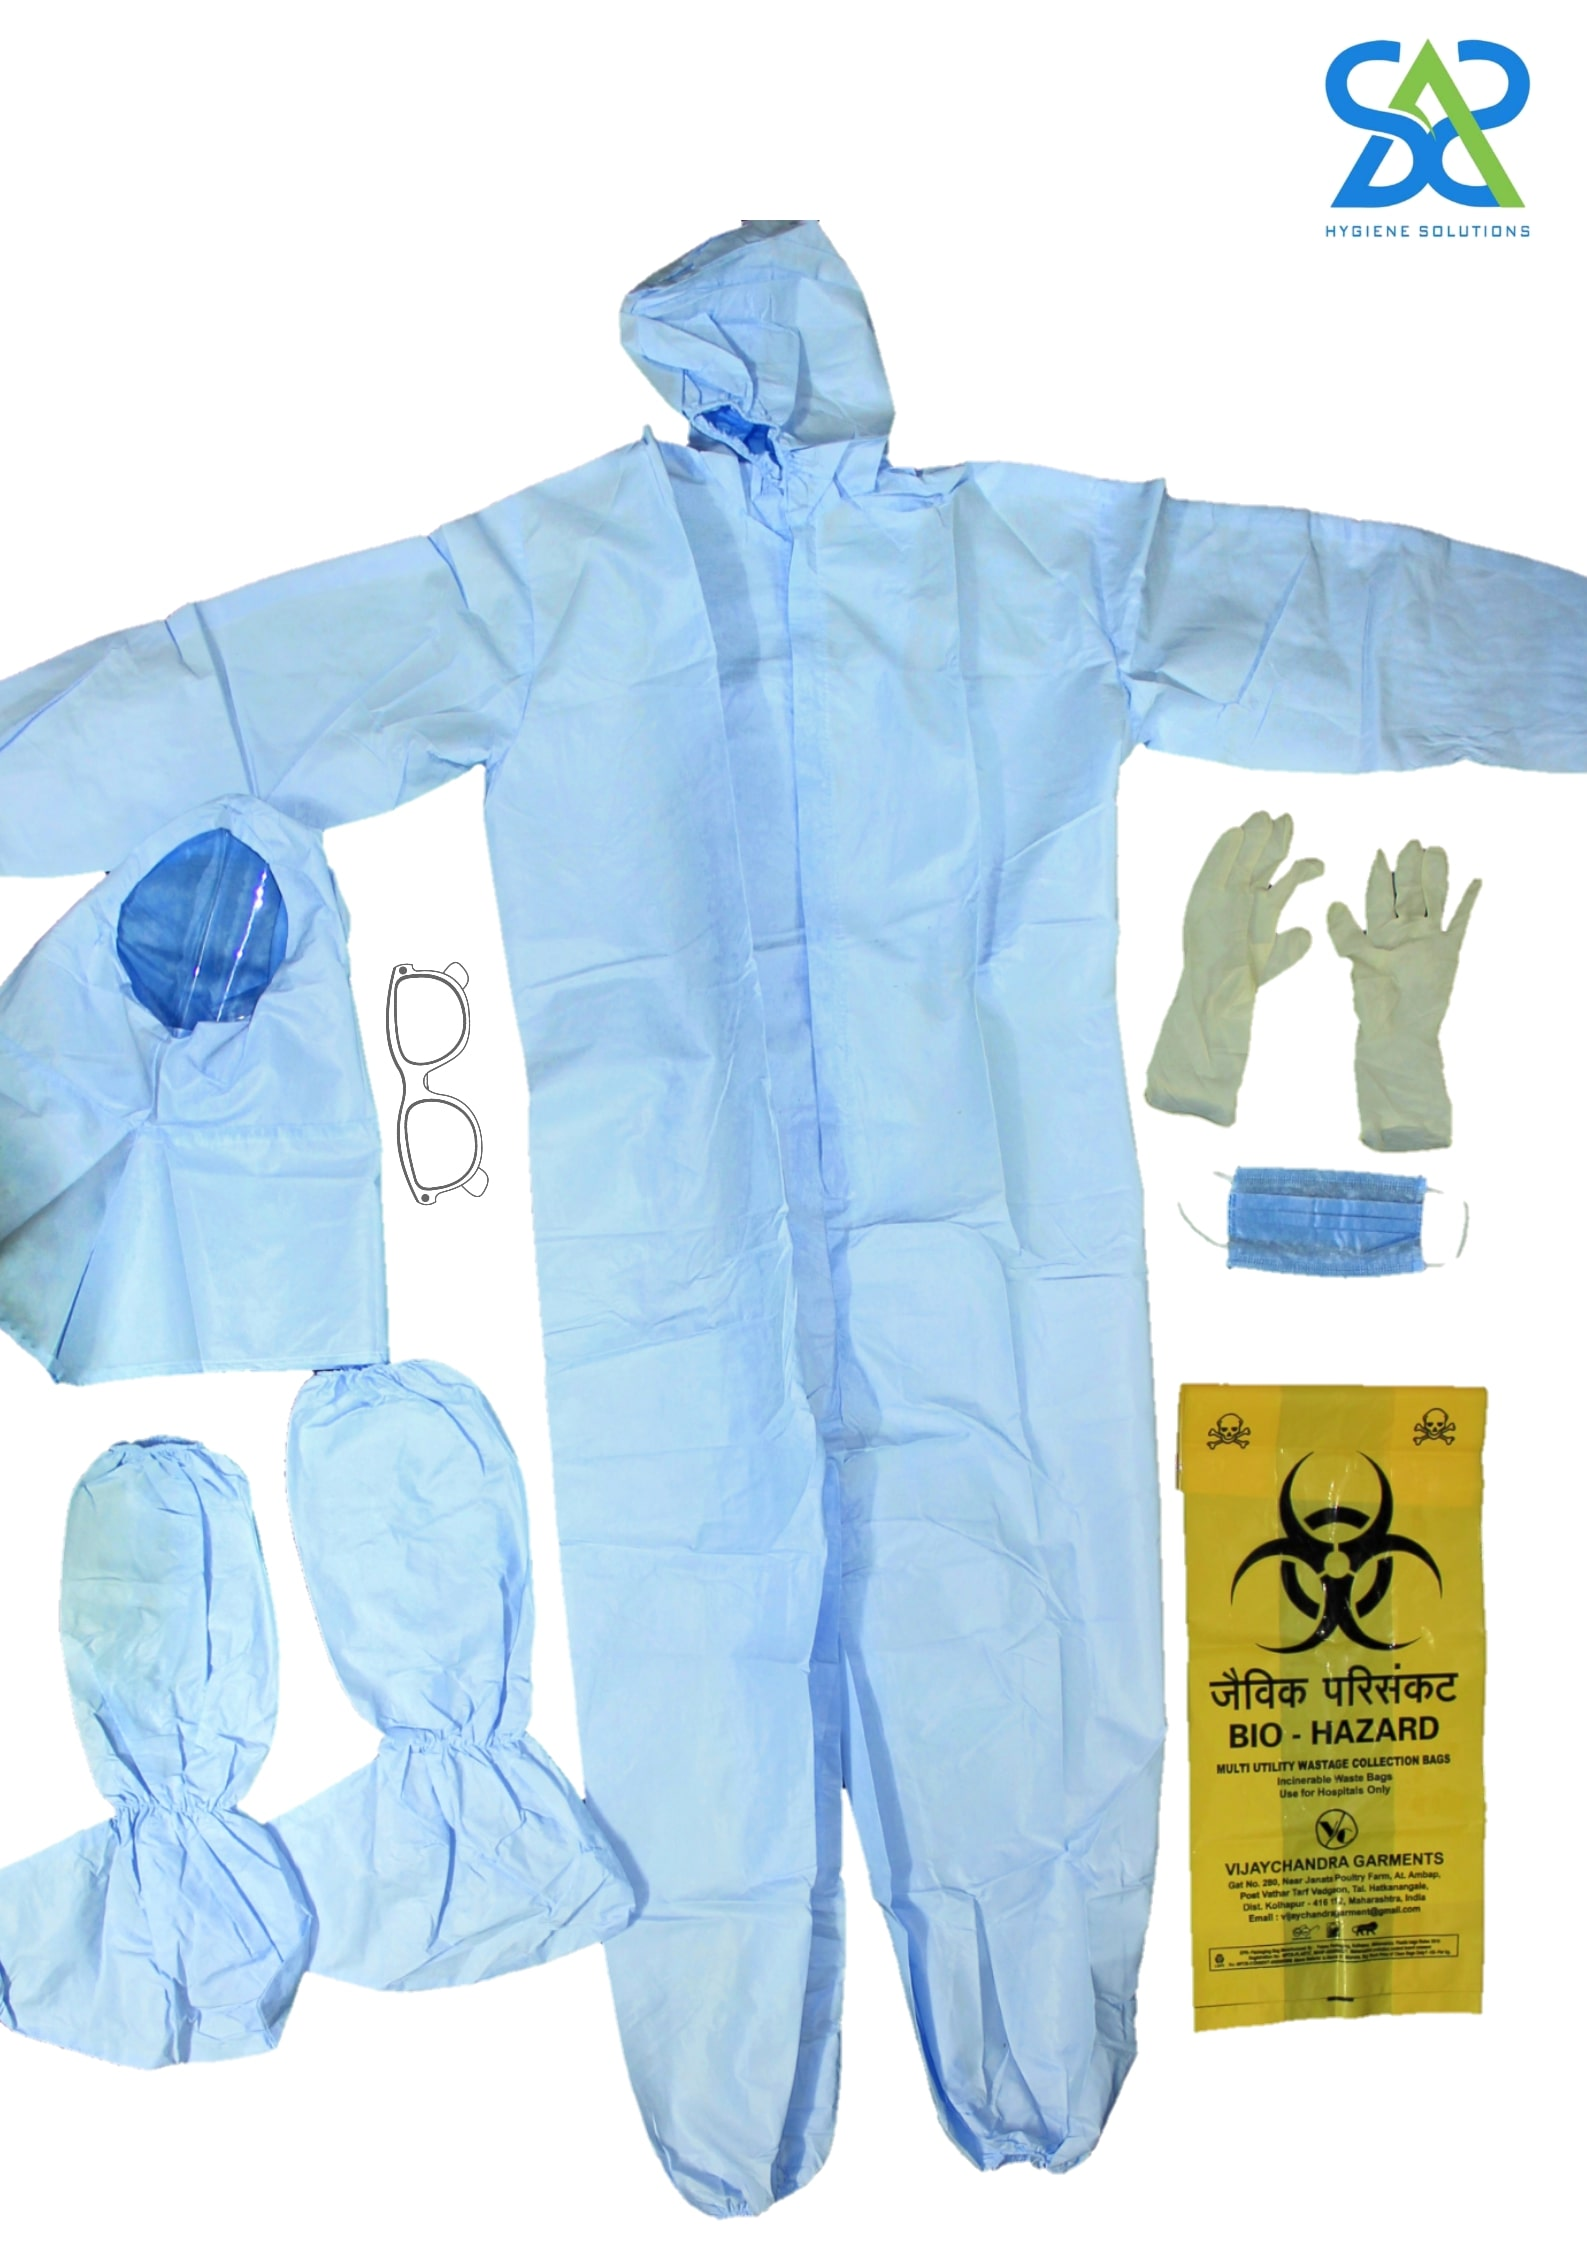 SAS (Professional Protective Equipment) PPE Kit